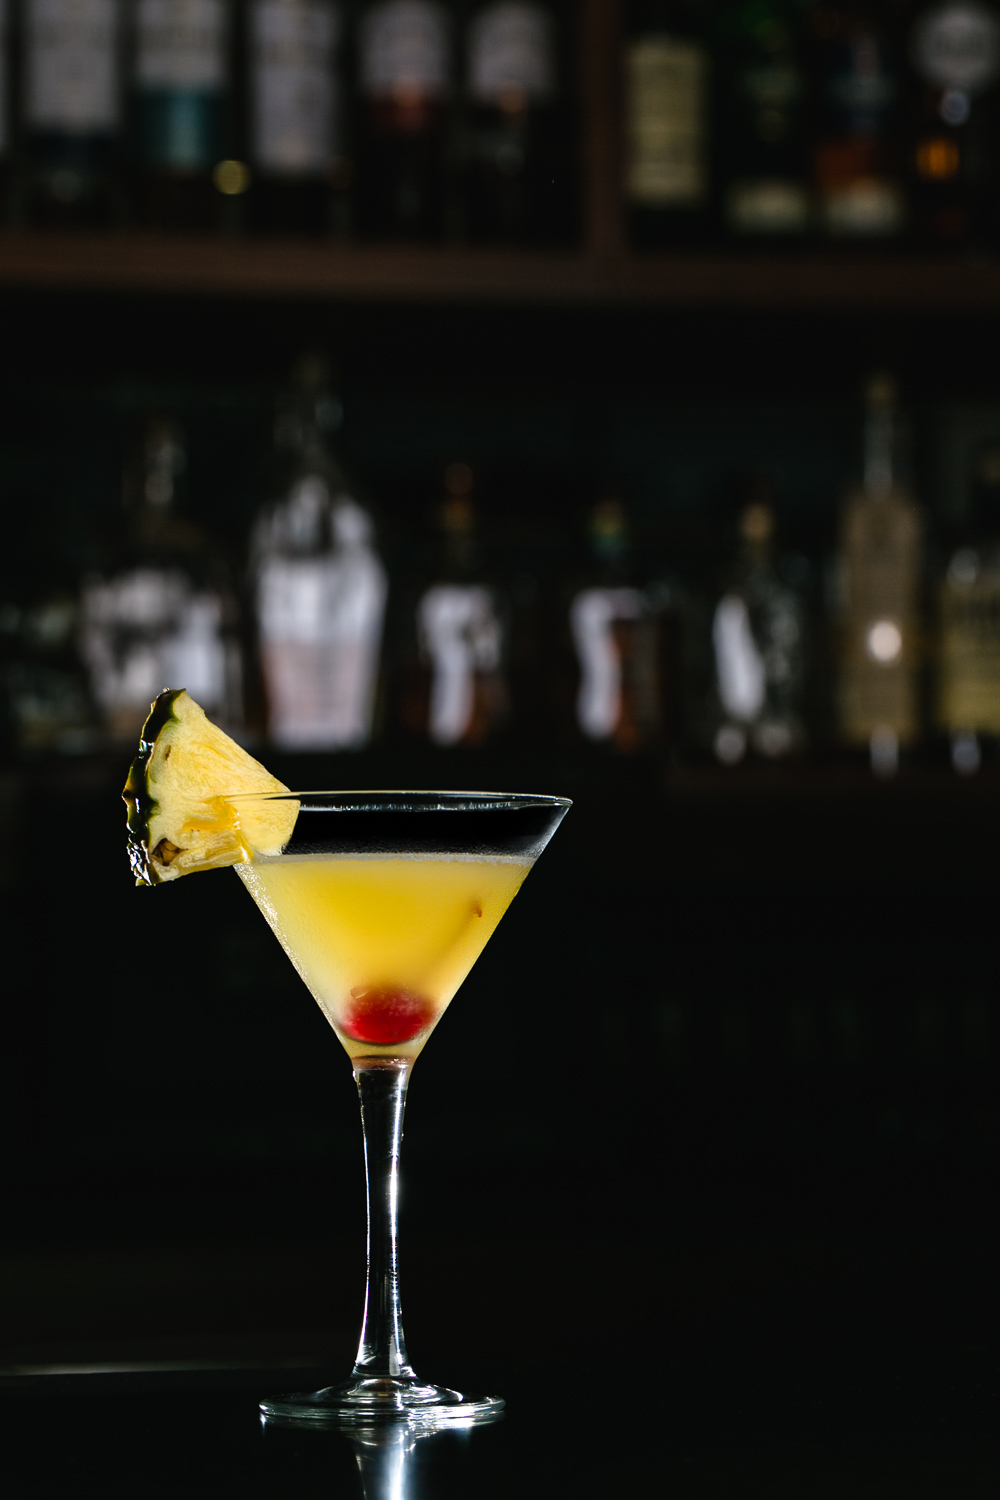 Nan-Thai-Fine-Dining-Pineapple-Cocktail-Erik-Meadows